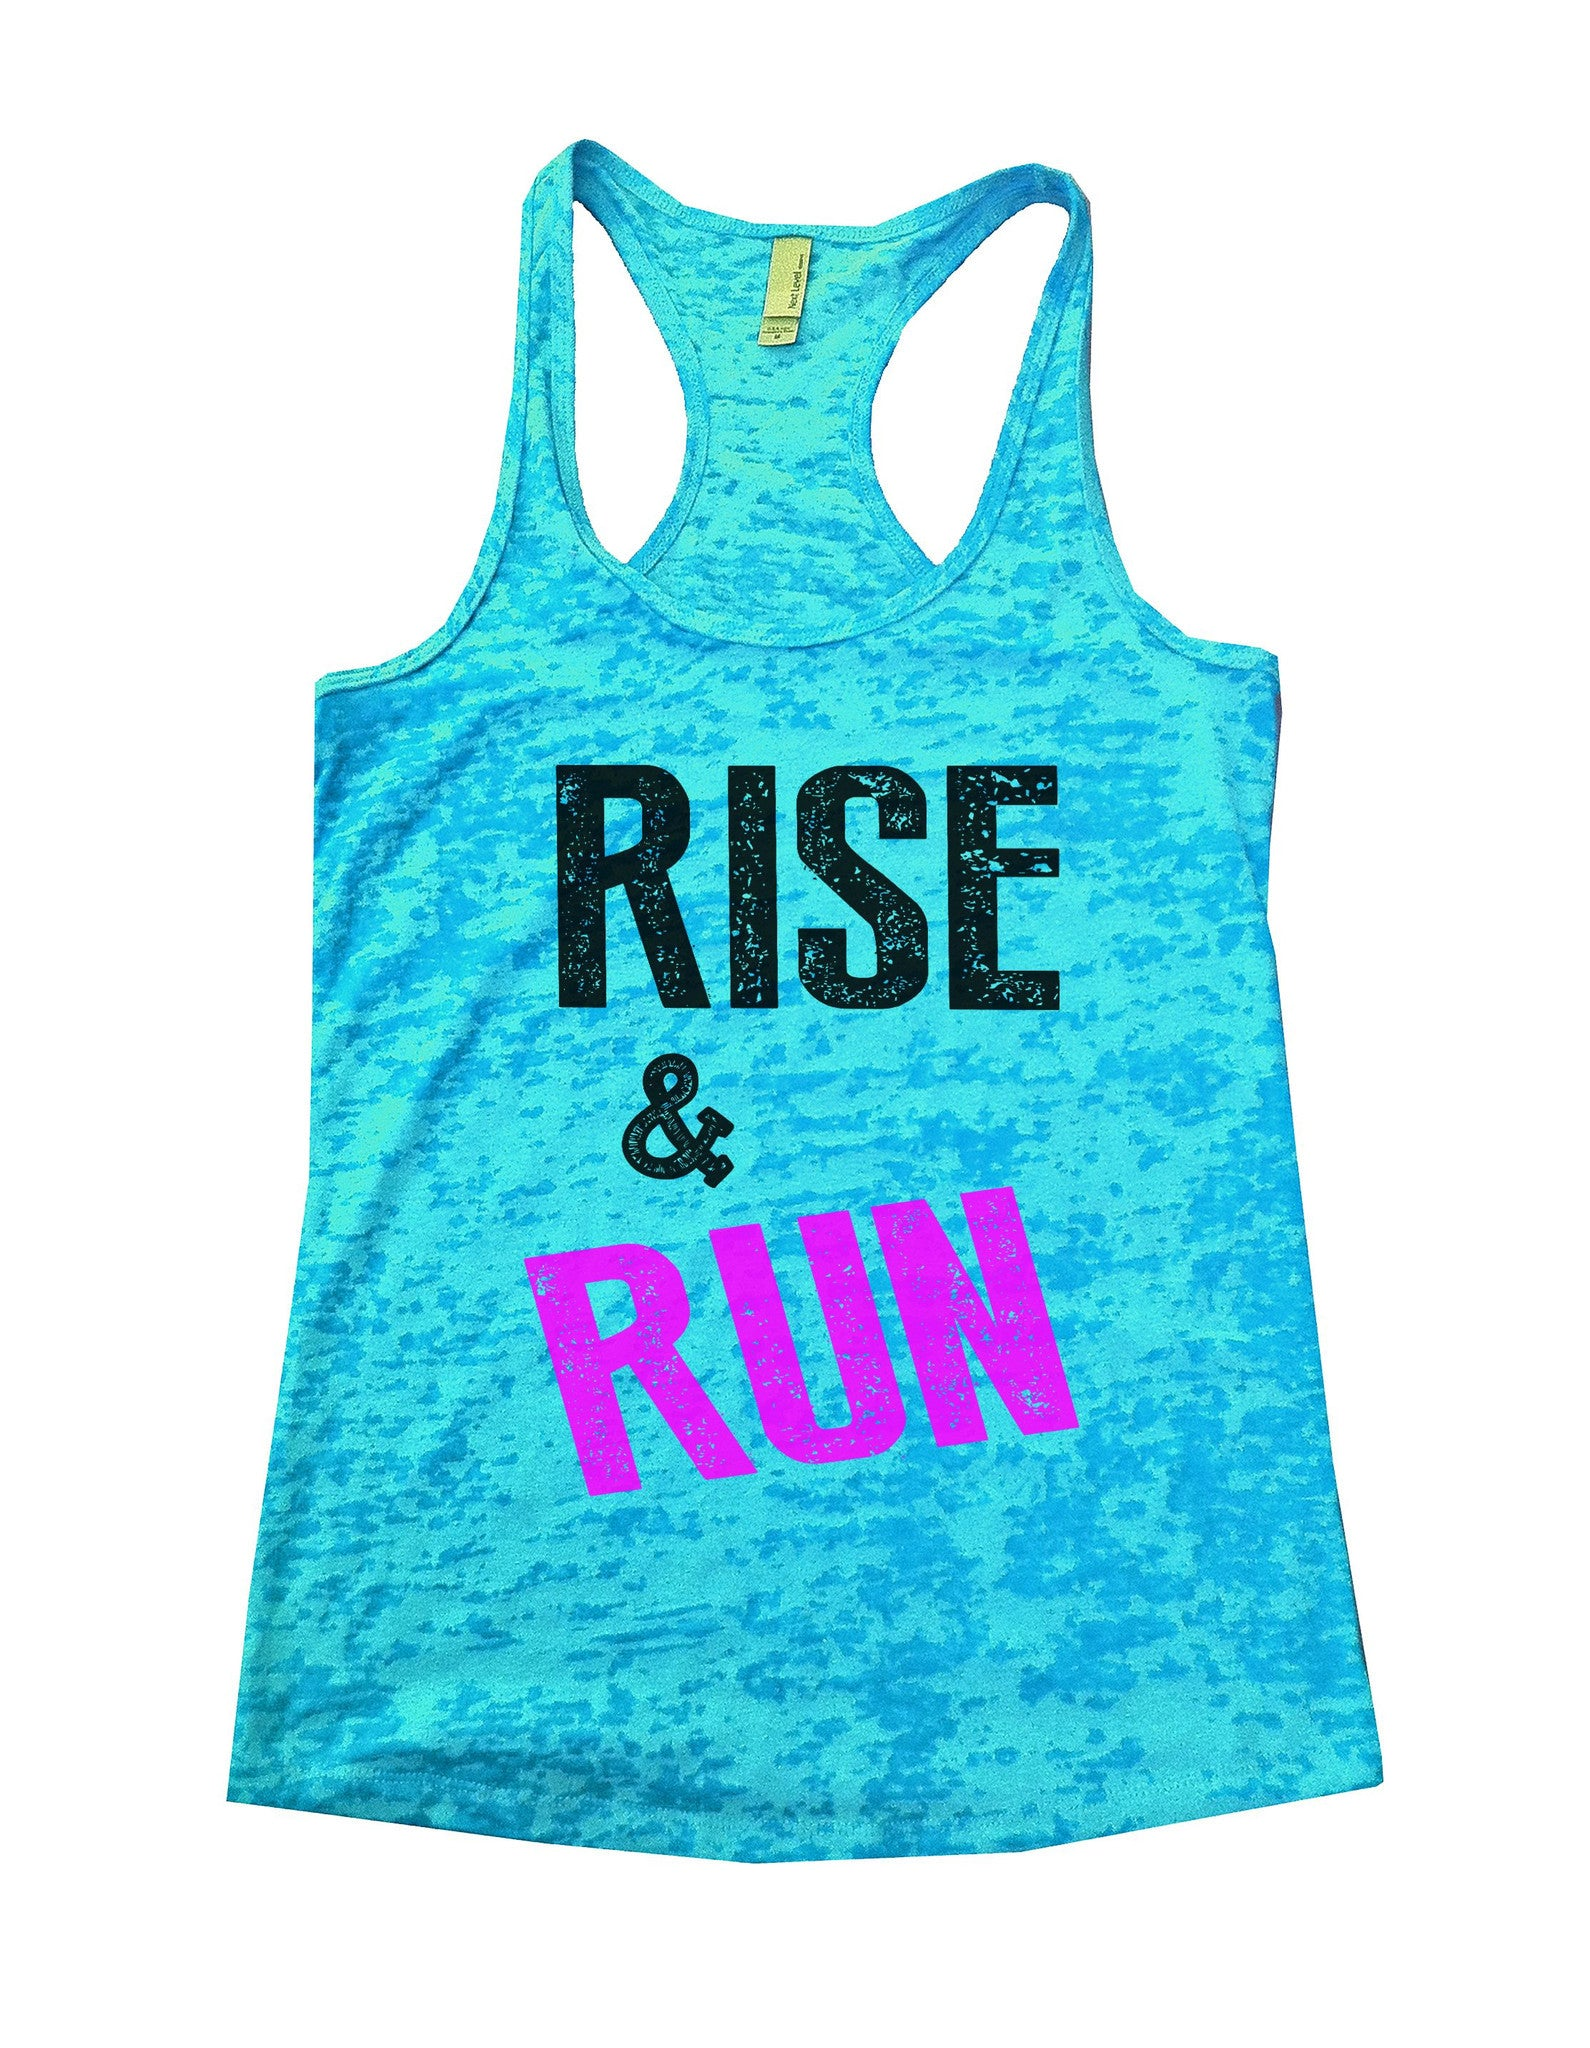 Rise & Run Burnout Tank Top By BurnoutTankTops.com - 672 - Funny Shirts Tank Tops Burnouts and Triblends  - 1